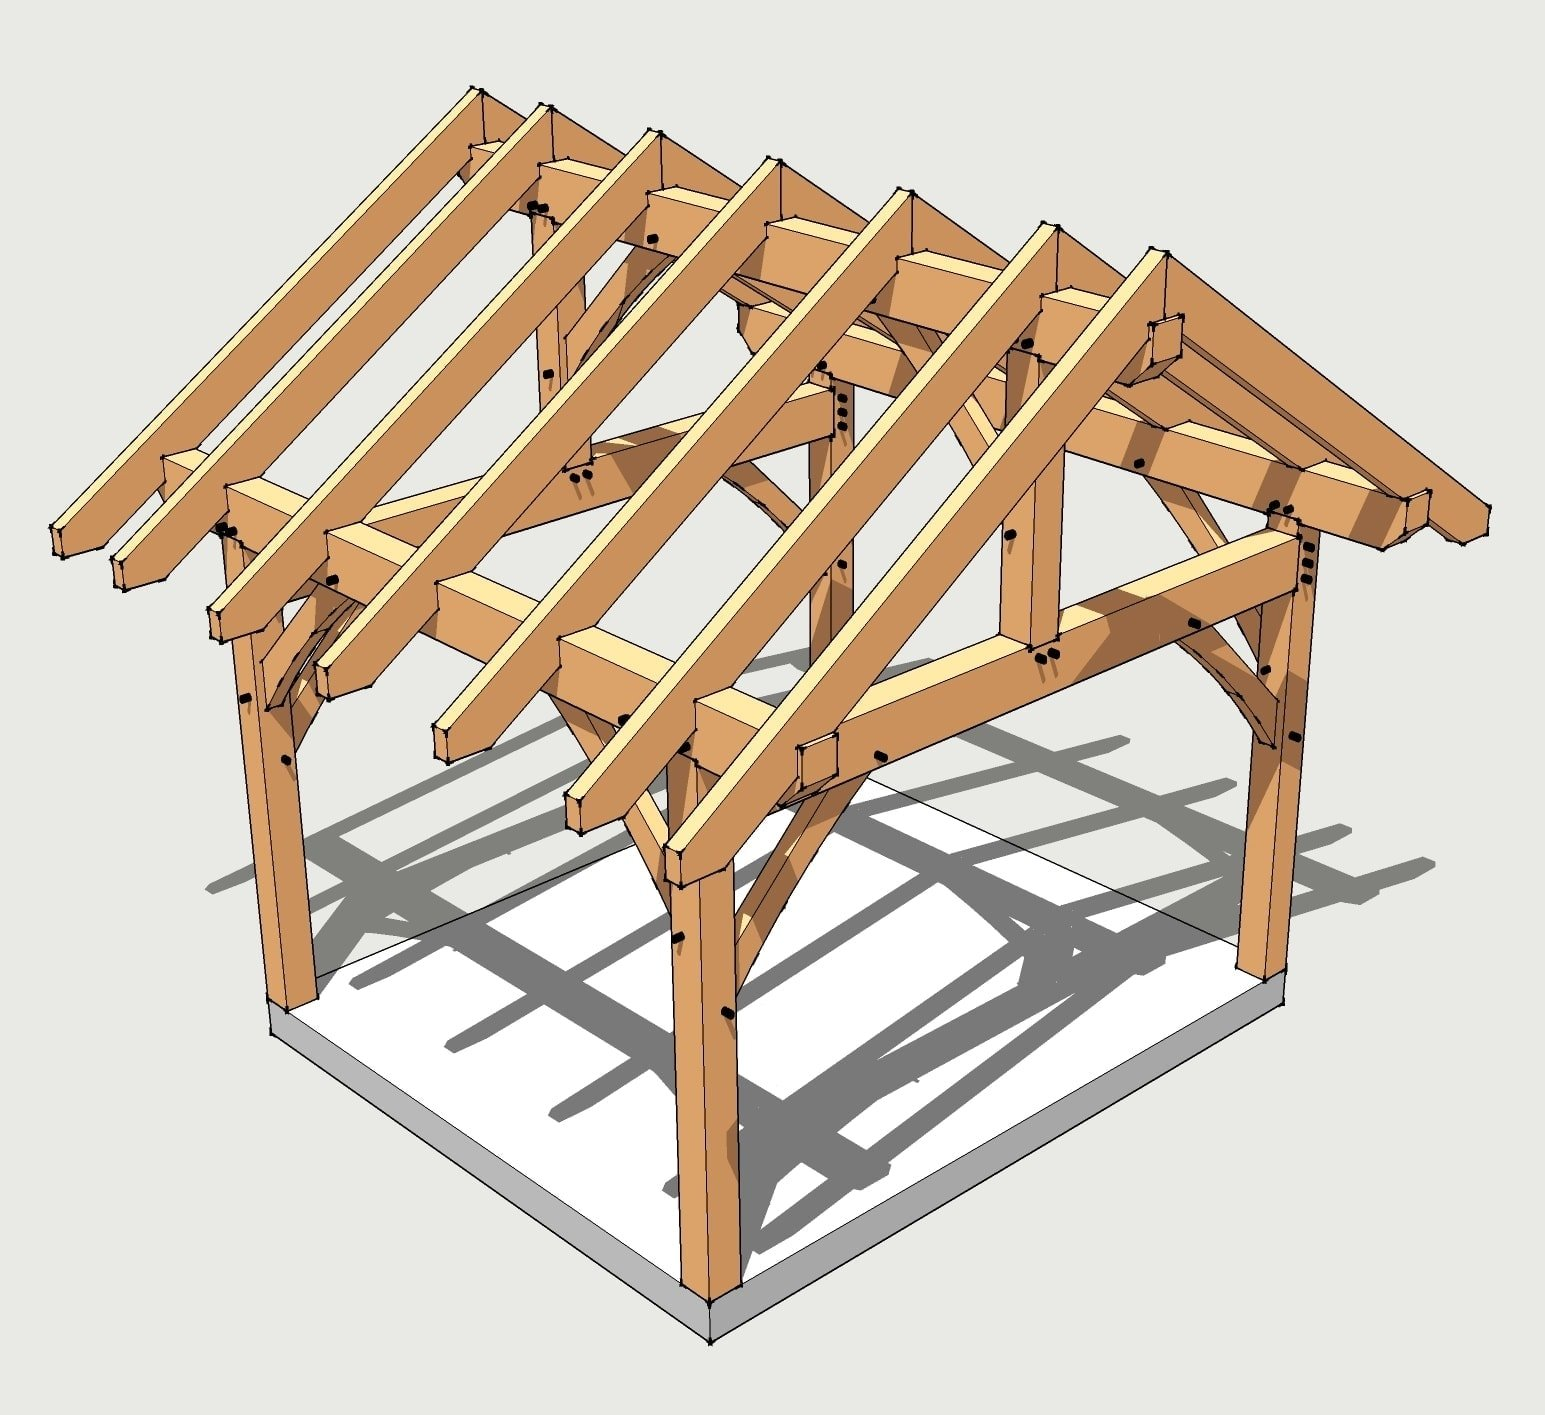 12x14 timber frame plan timber frame hq for Post and beam shed plans